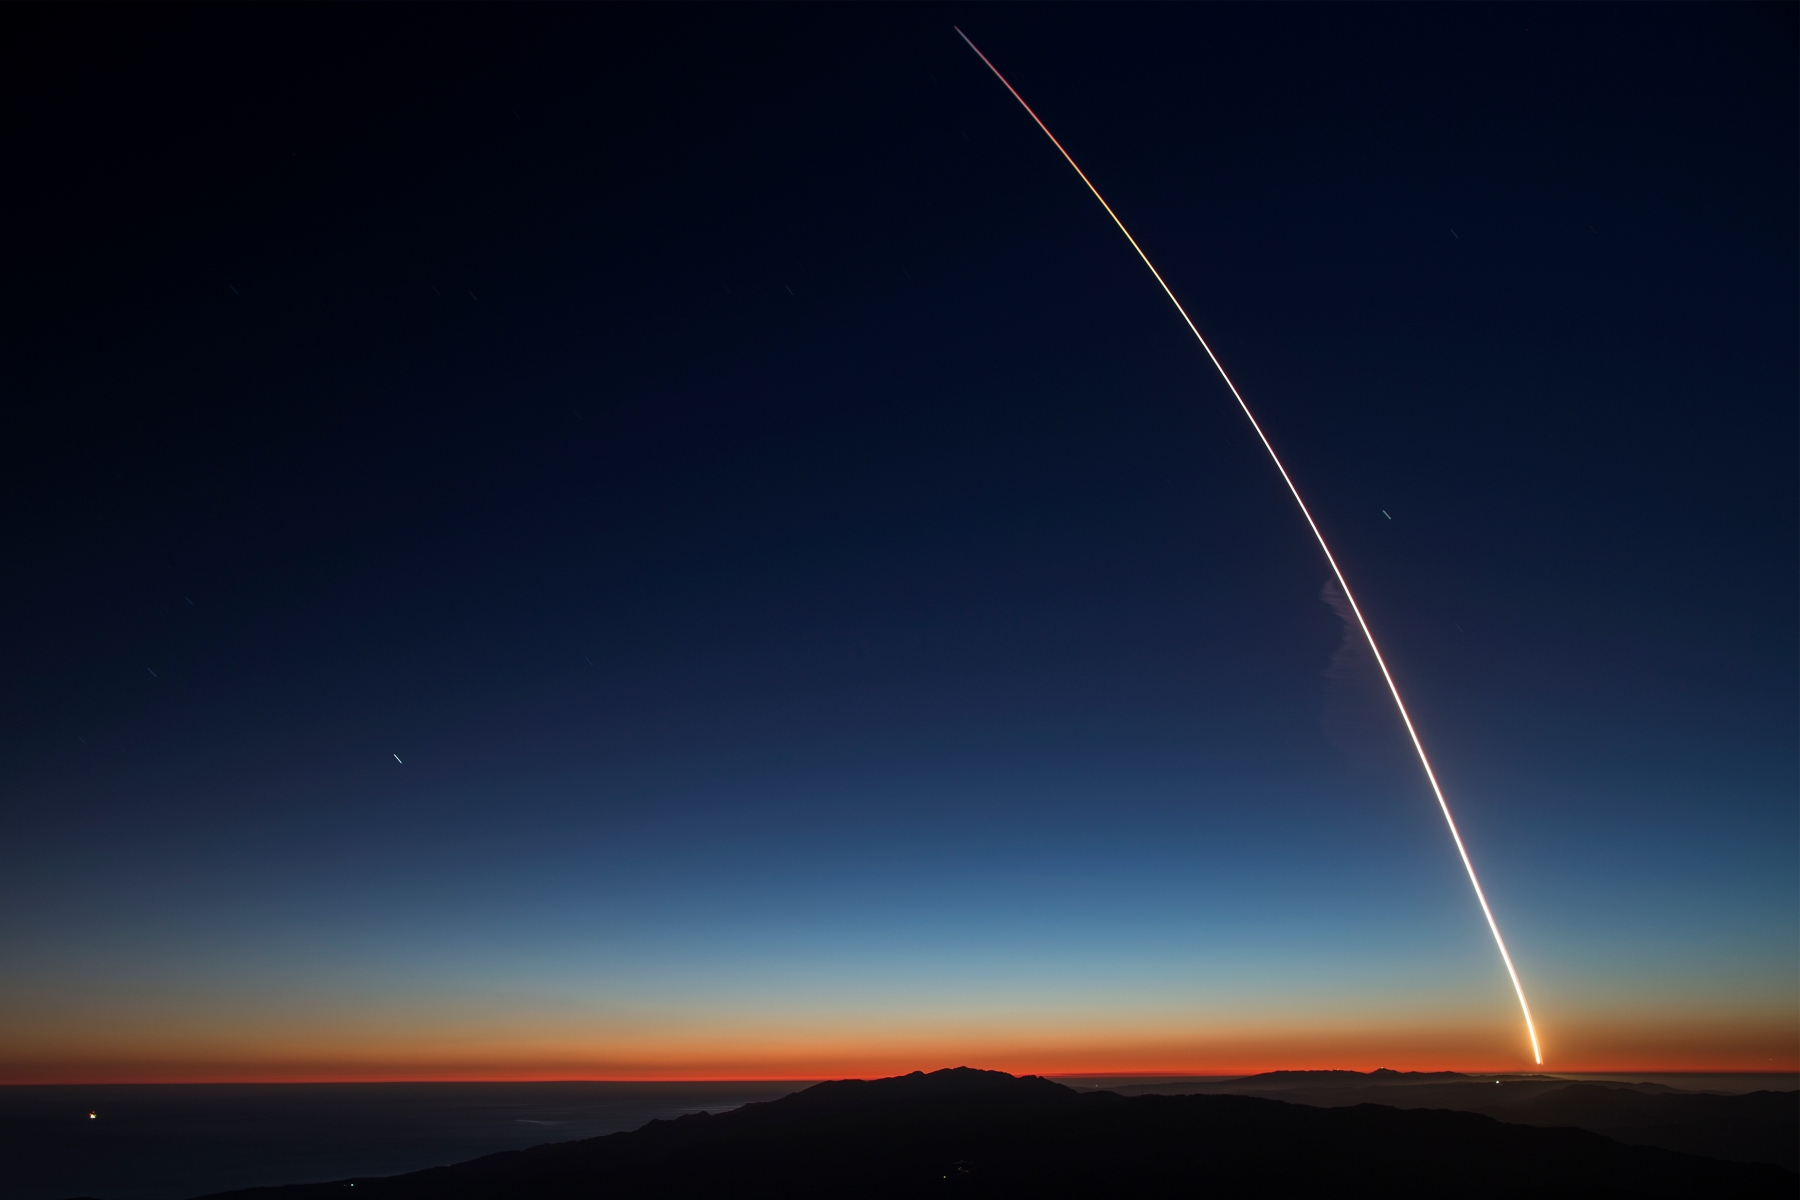 The SpaceX Falcon 9 rocket launches from Vandenberg Air Force Base carrying the SAOCOM 1A and ITASAT 1 satellites, as seen during a long exposure on October 7, 2018 near Santa Barbara, California. After launching the satellites, the Falcon 9 rocket successfully returned to land on solid ground near the launch site rather than at sea. (Photo by David McNew/Getty Images)